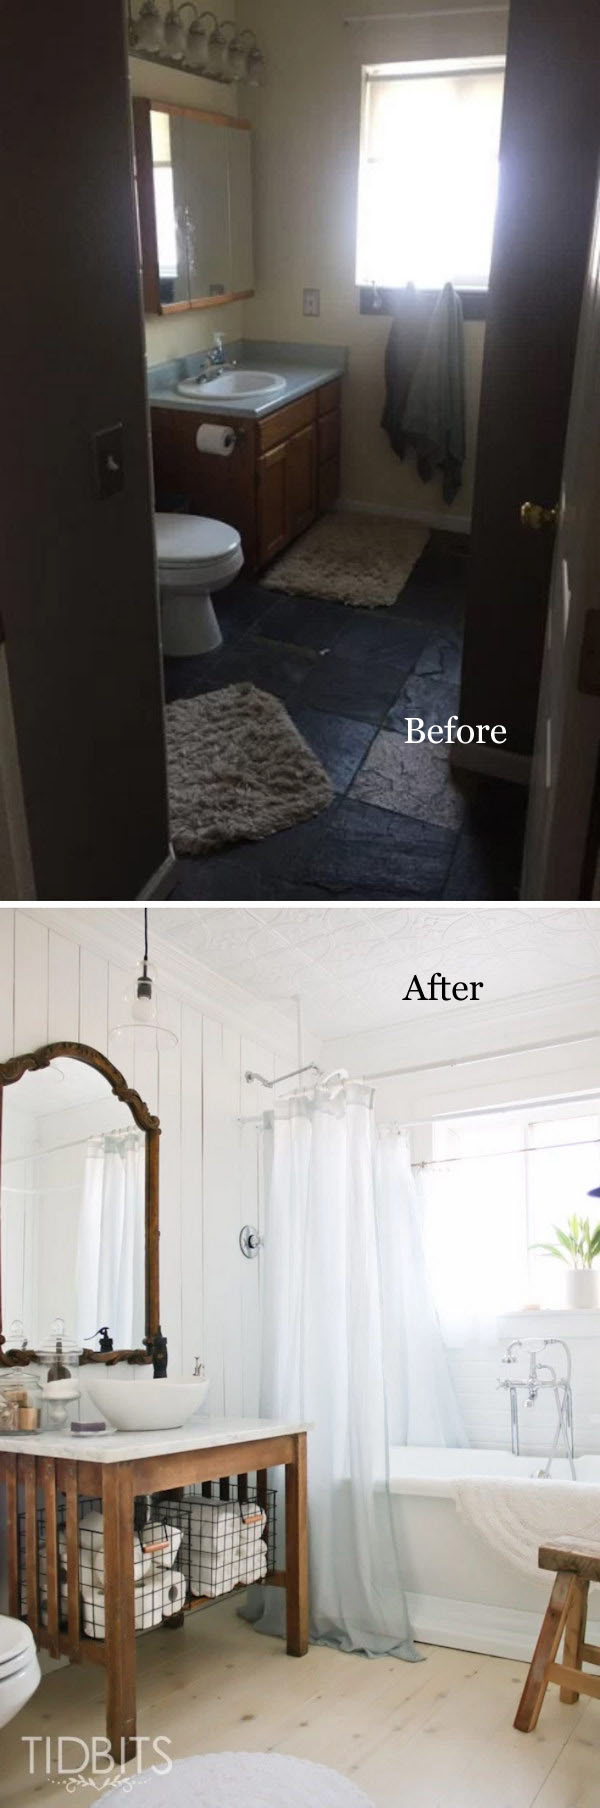 60-bathroom-remodel-before-and-after